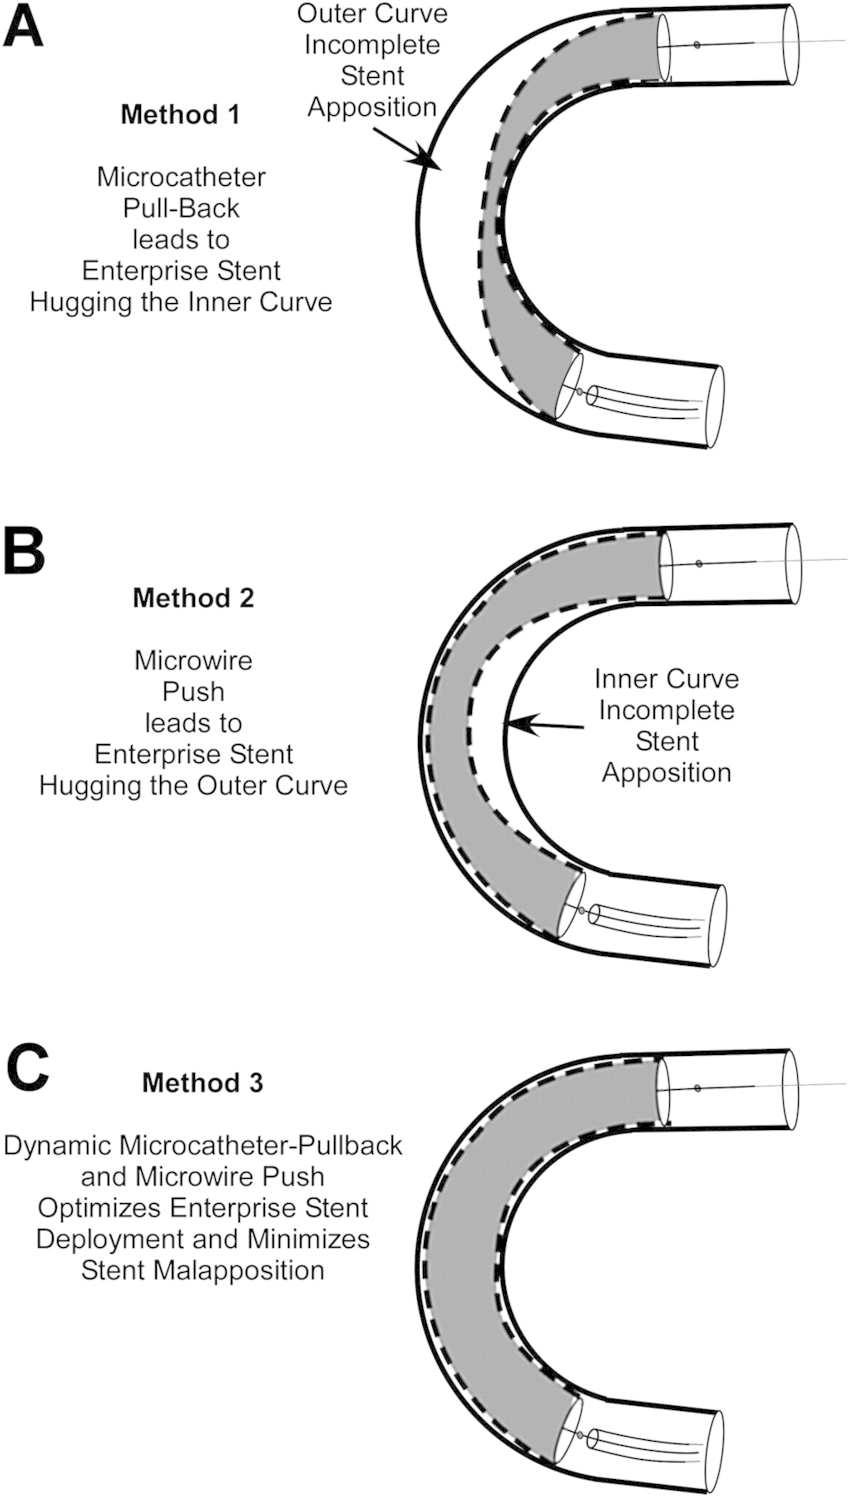 Illustration of resulting incomplete stent apposition (ISA